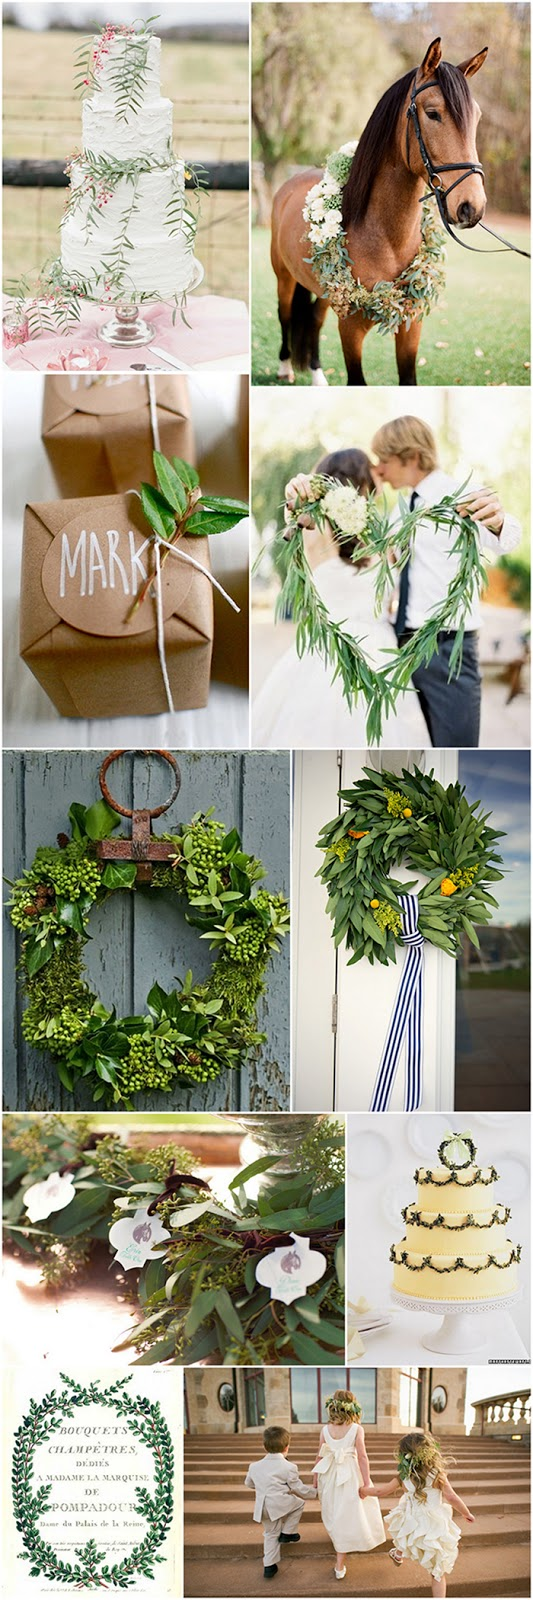 there are so many creative ways to add a little bit of green to your wedding | via Oh Lovely Day